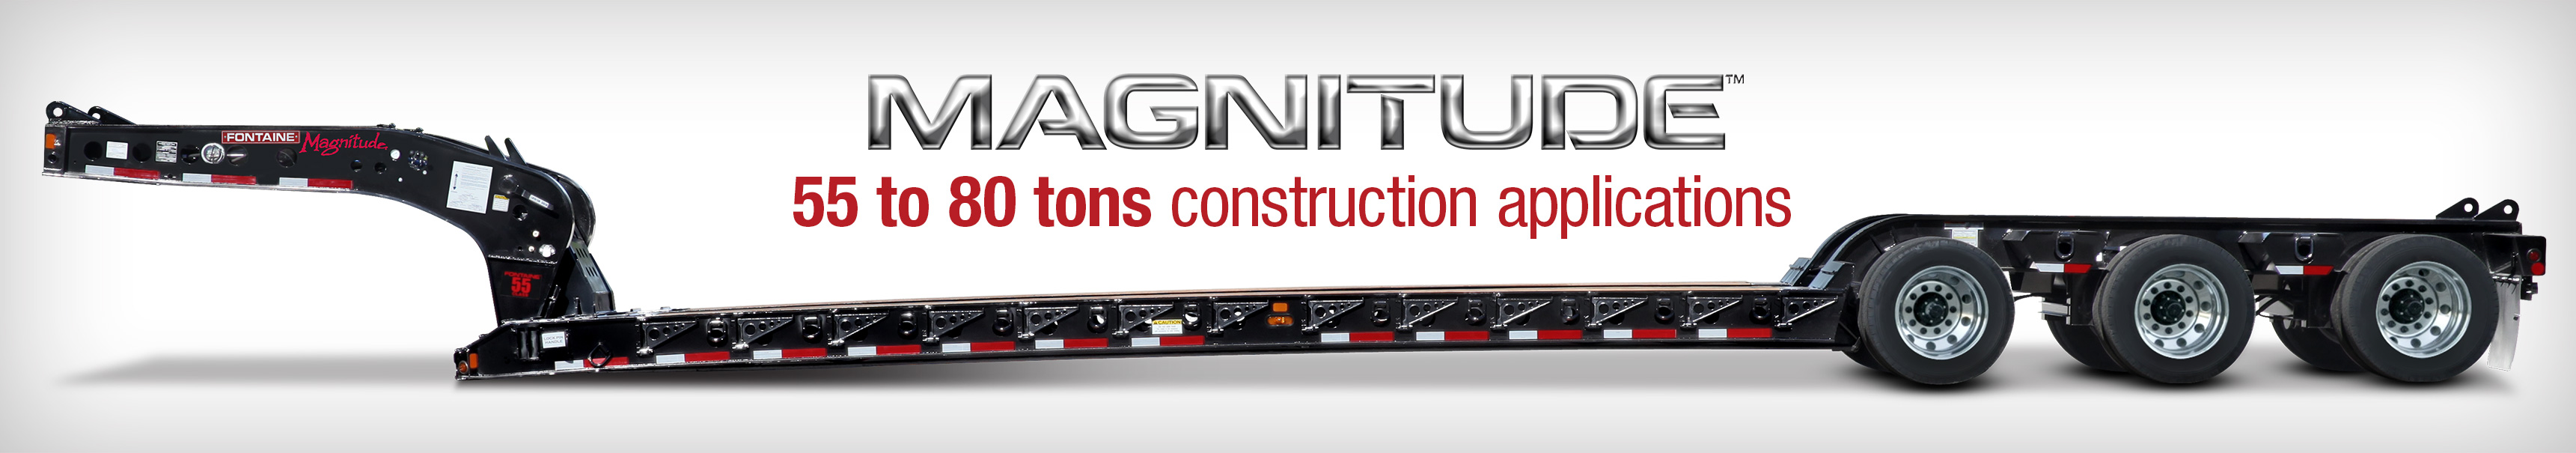 Fontaine Heavy-Haul Magnitude lowboy trailers for construction industry